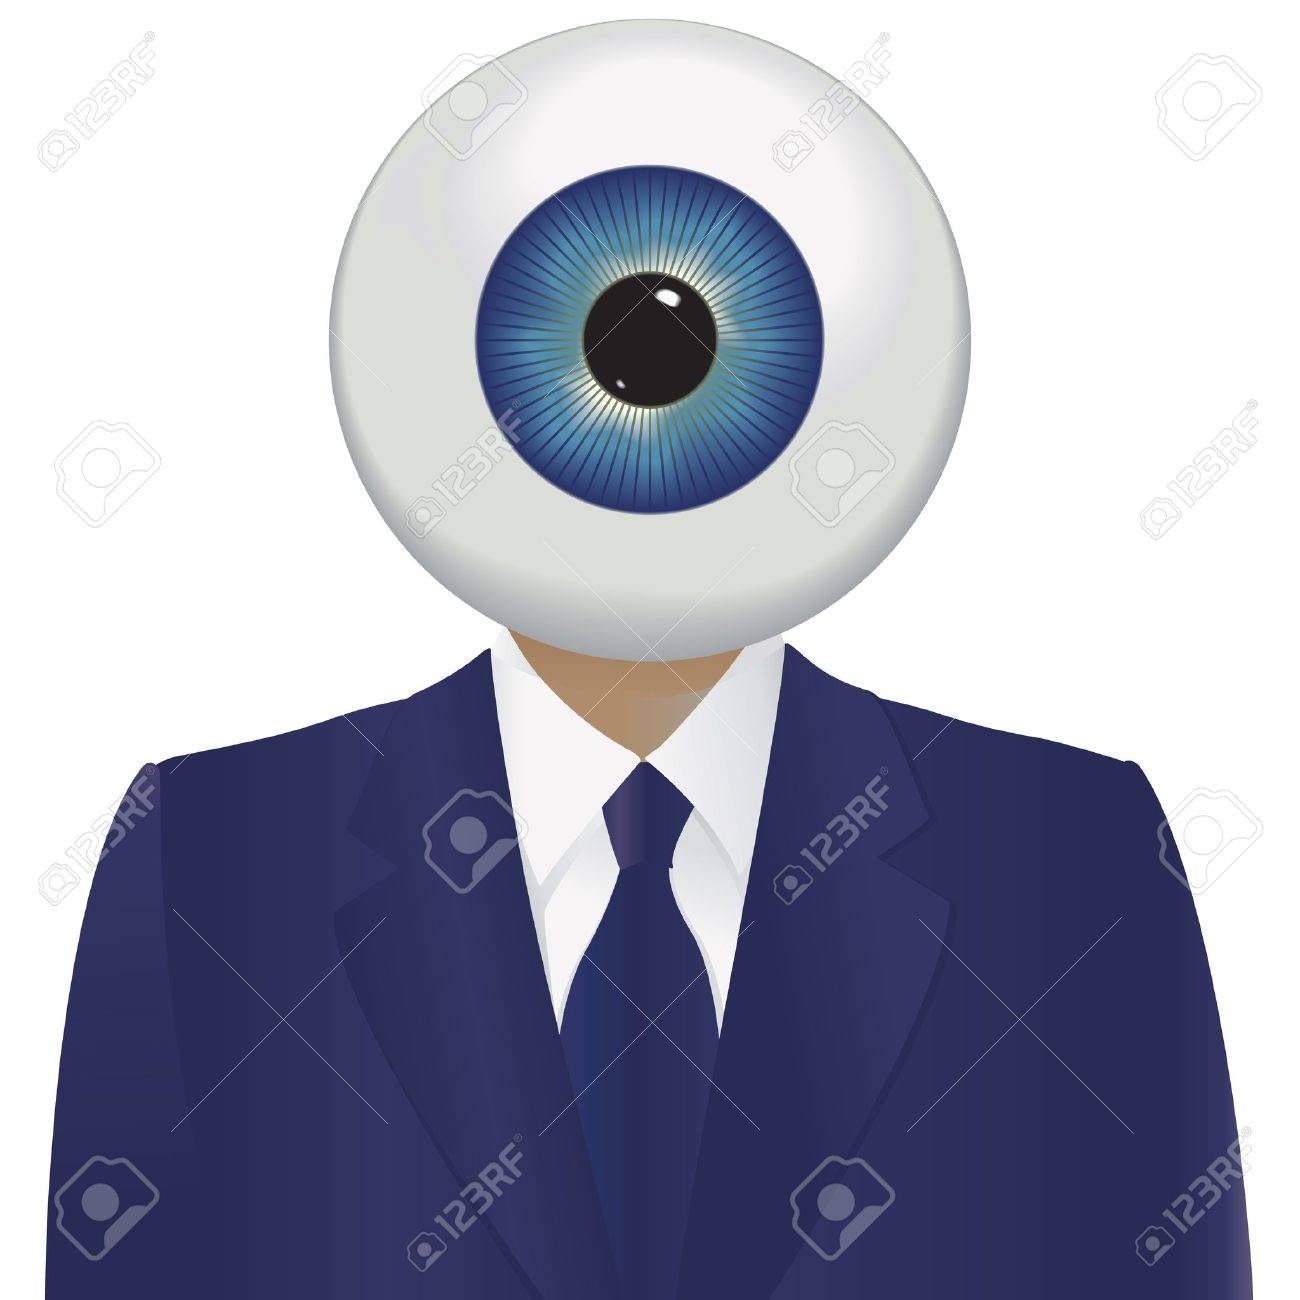 1,426 Private Eye Stock Vector Illustration And Royalty Free ...